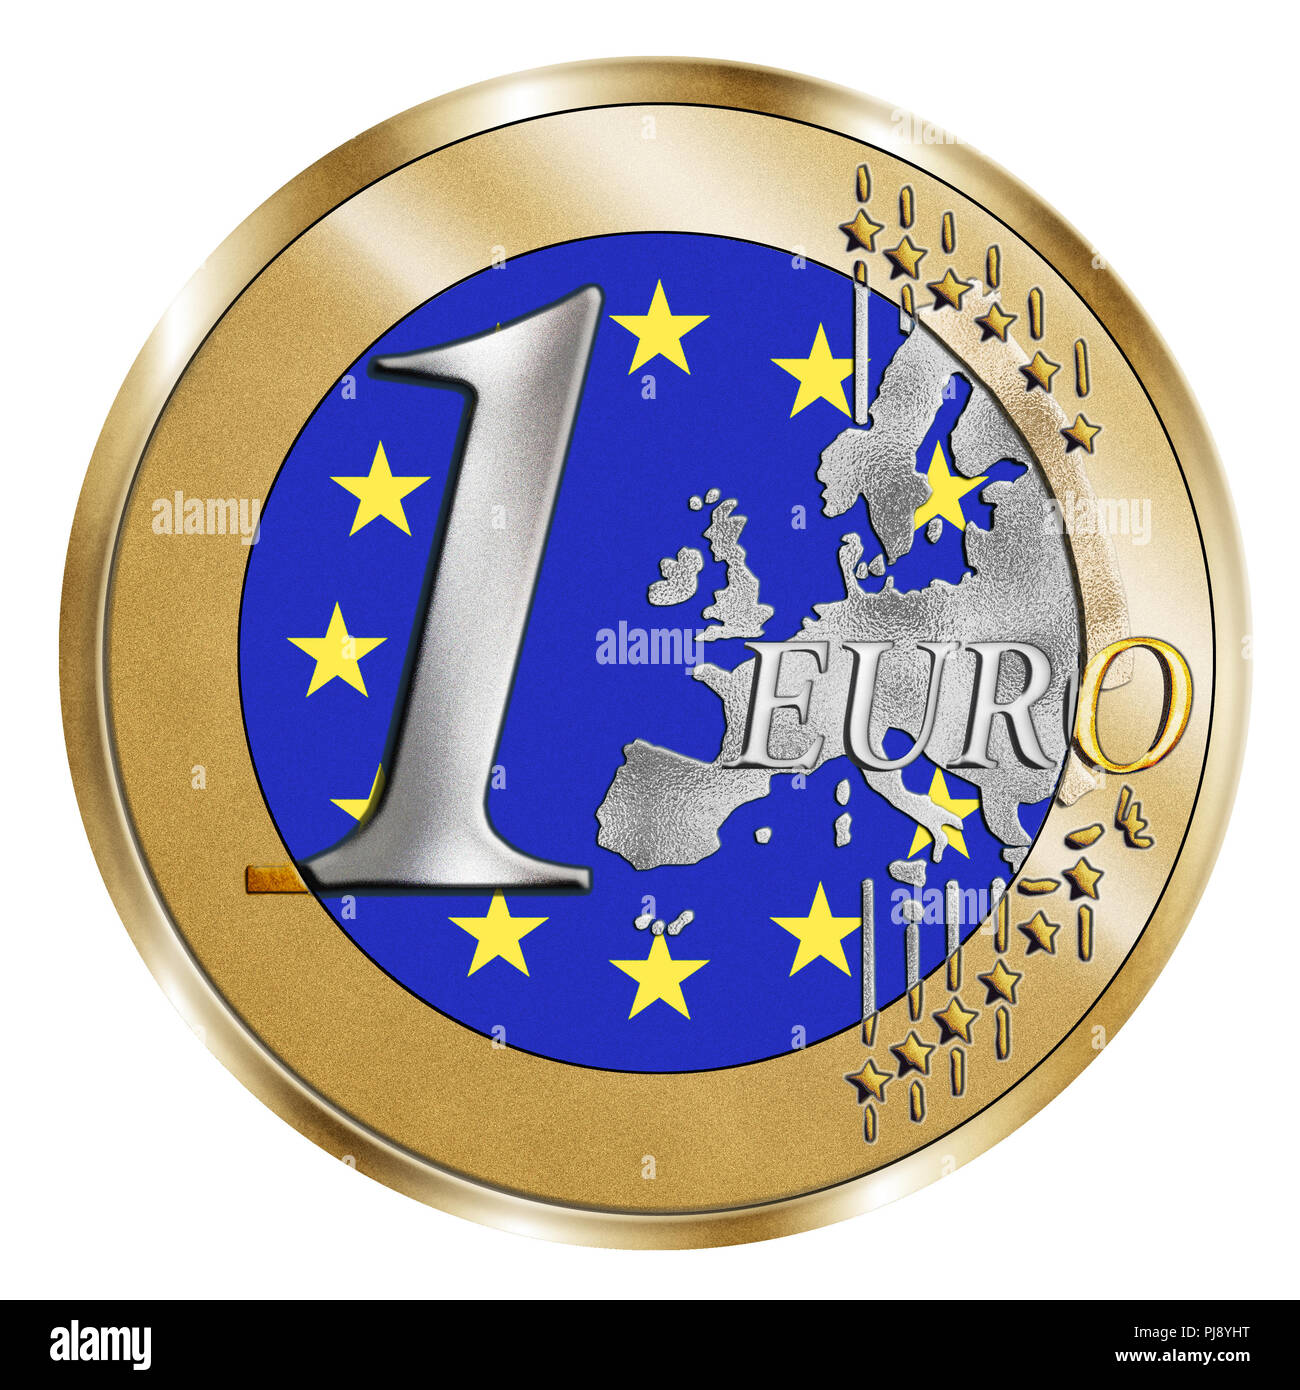 A montage of a stylised 1 Euro coin and the European flag. A Photoshop composite with inlaid grain emphasises the vivid silver and gold effect - Stock Image